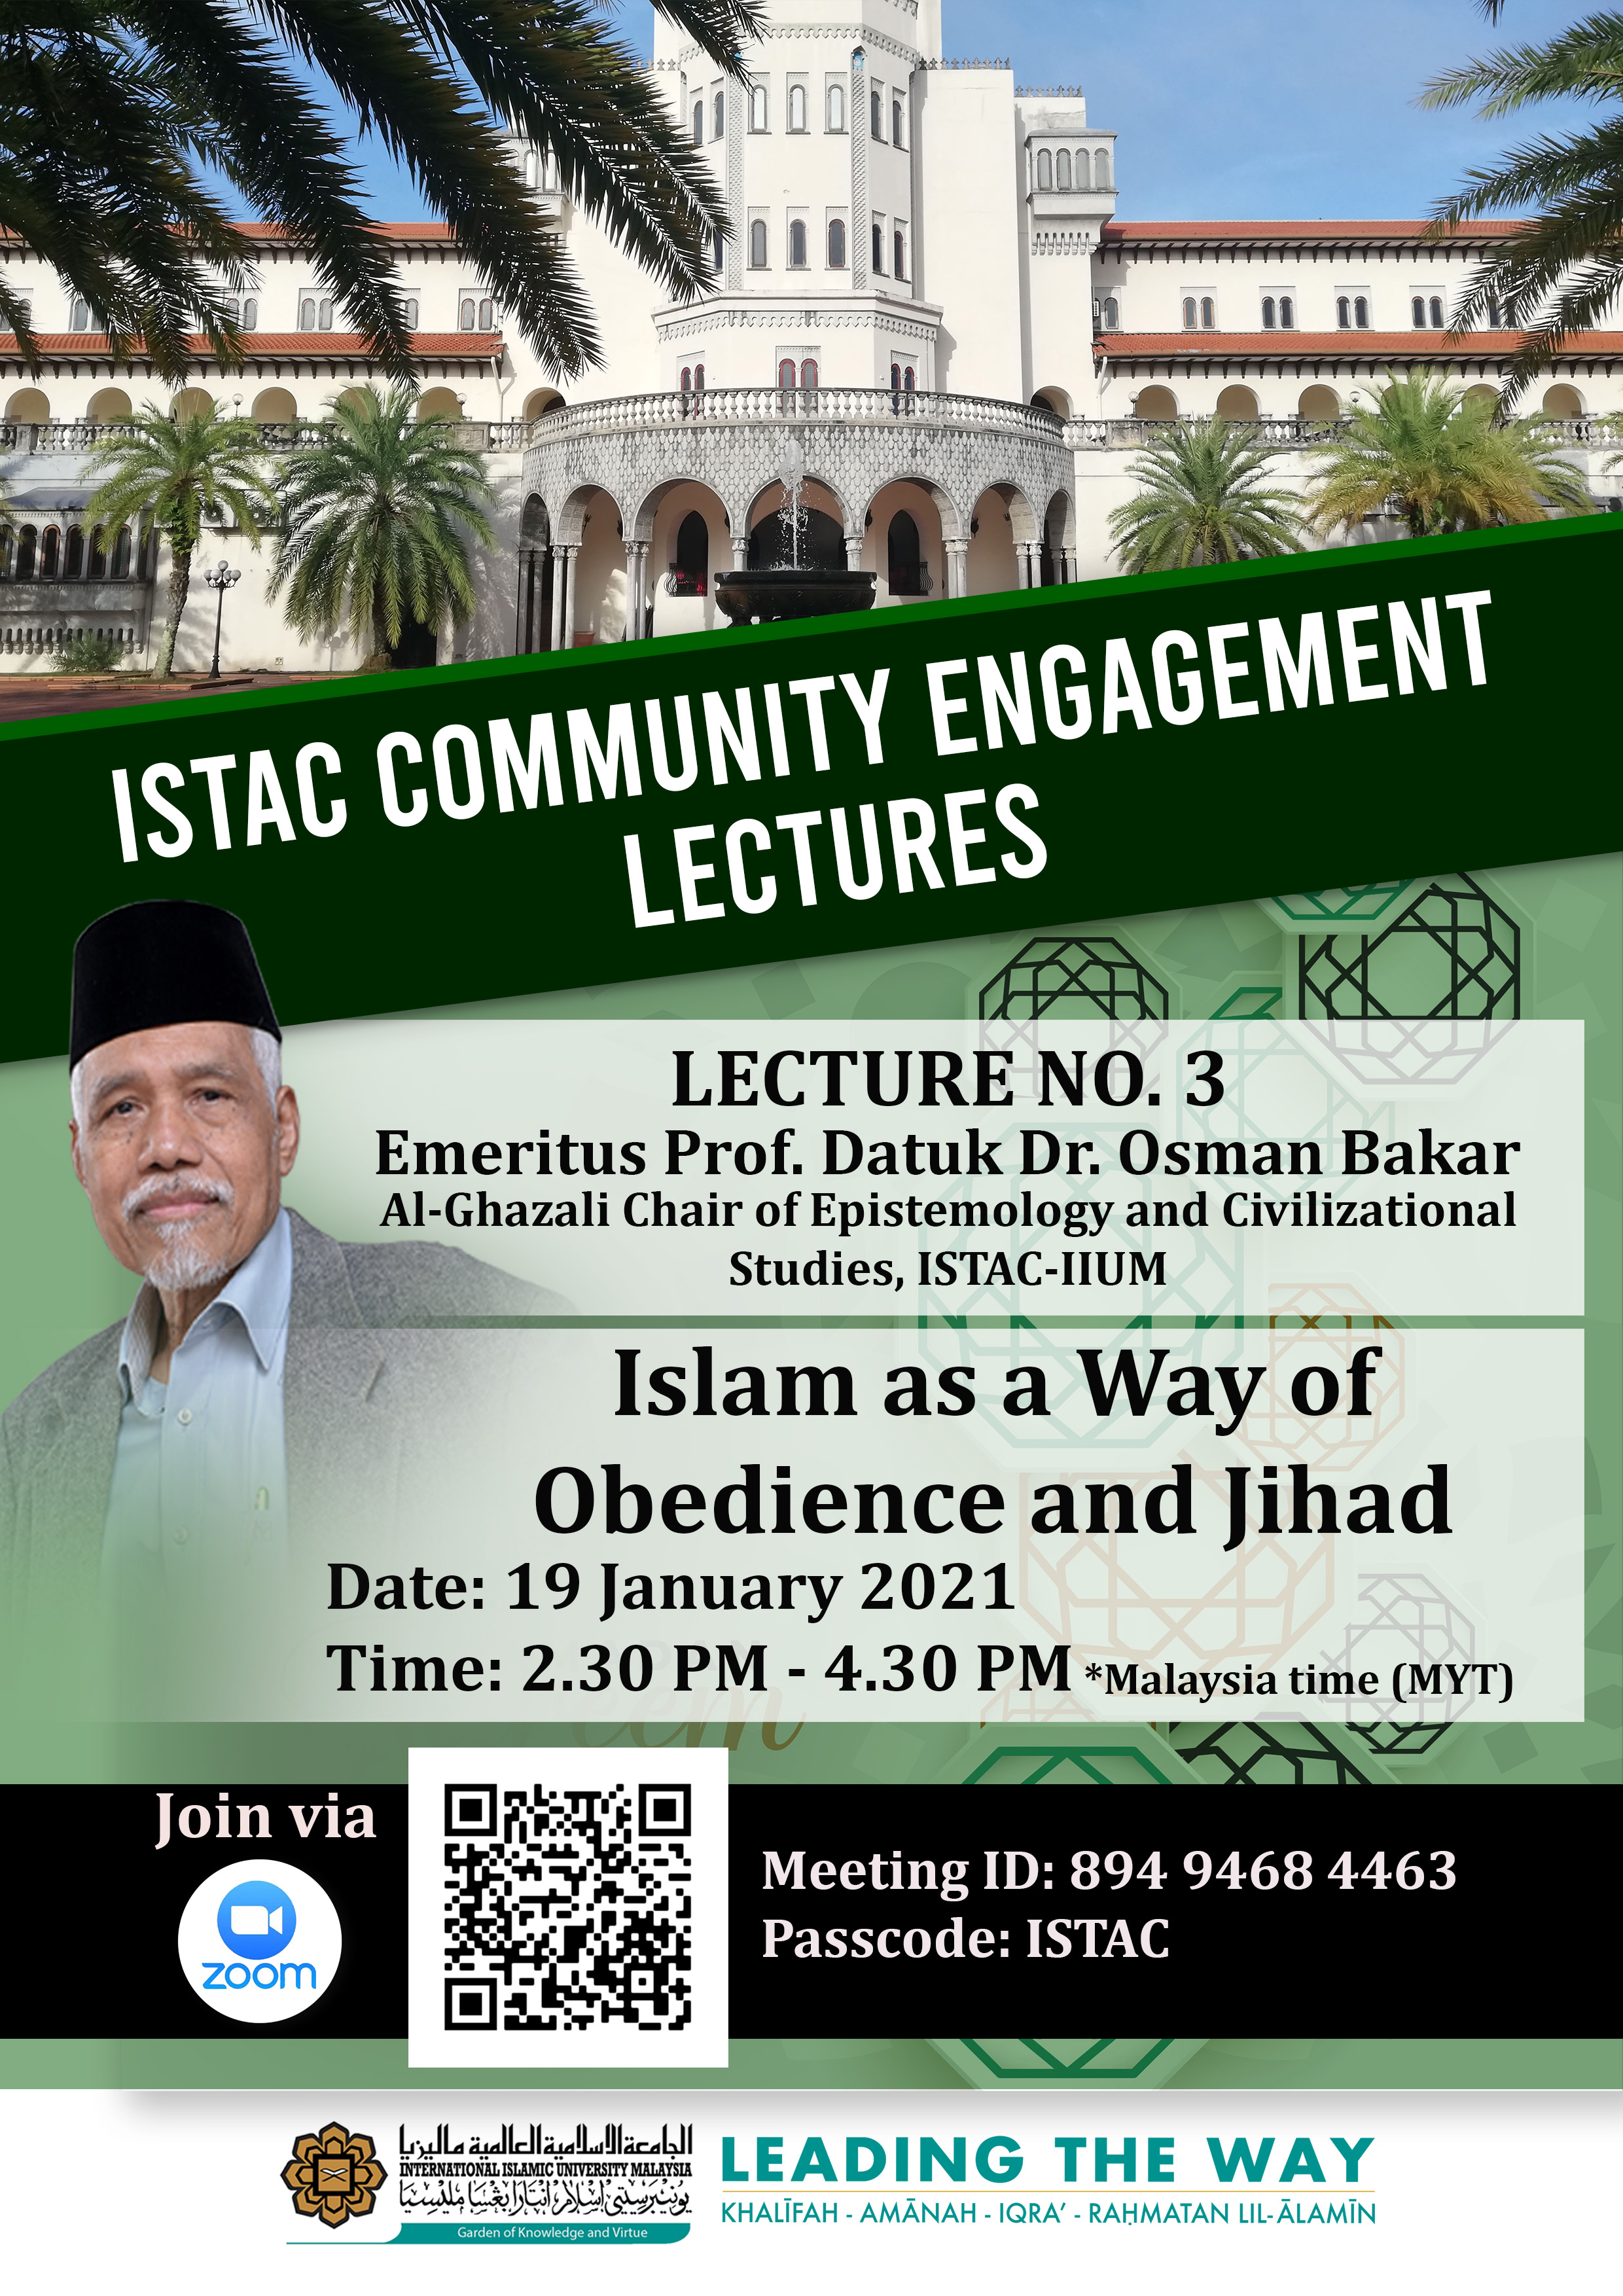 ISTAC COMMUNITY ENGAGEMENT LECTURES - LECTURE NO. 3